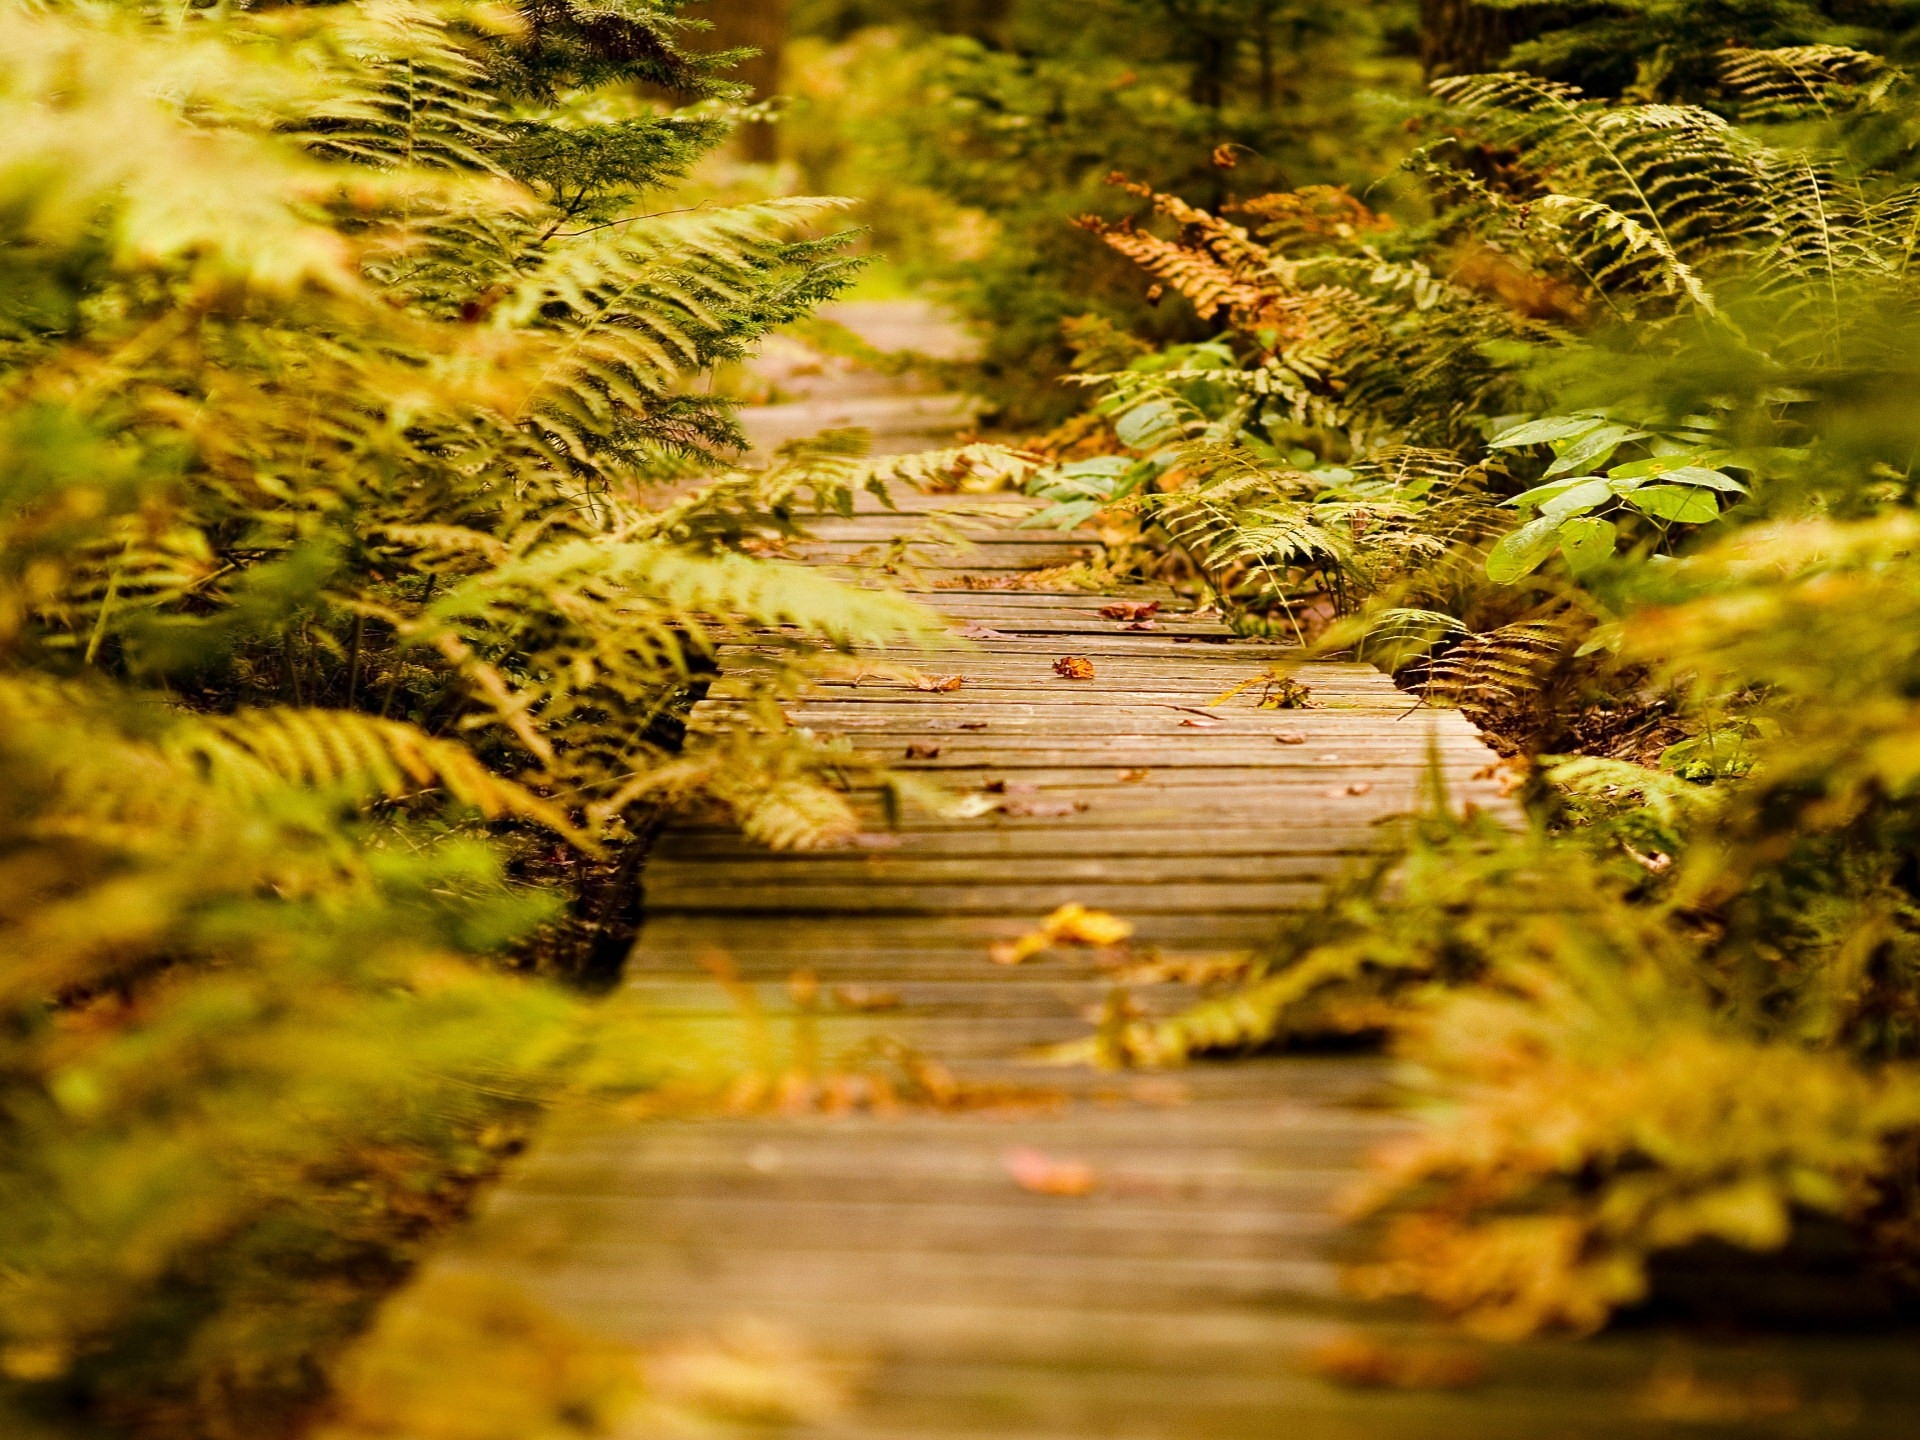 89285 download wallpaper Nature, Autumn, Leaves, Fern, Vegetation, Track screensavers and pictures for free